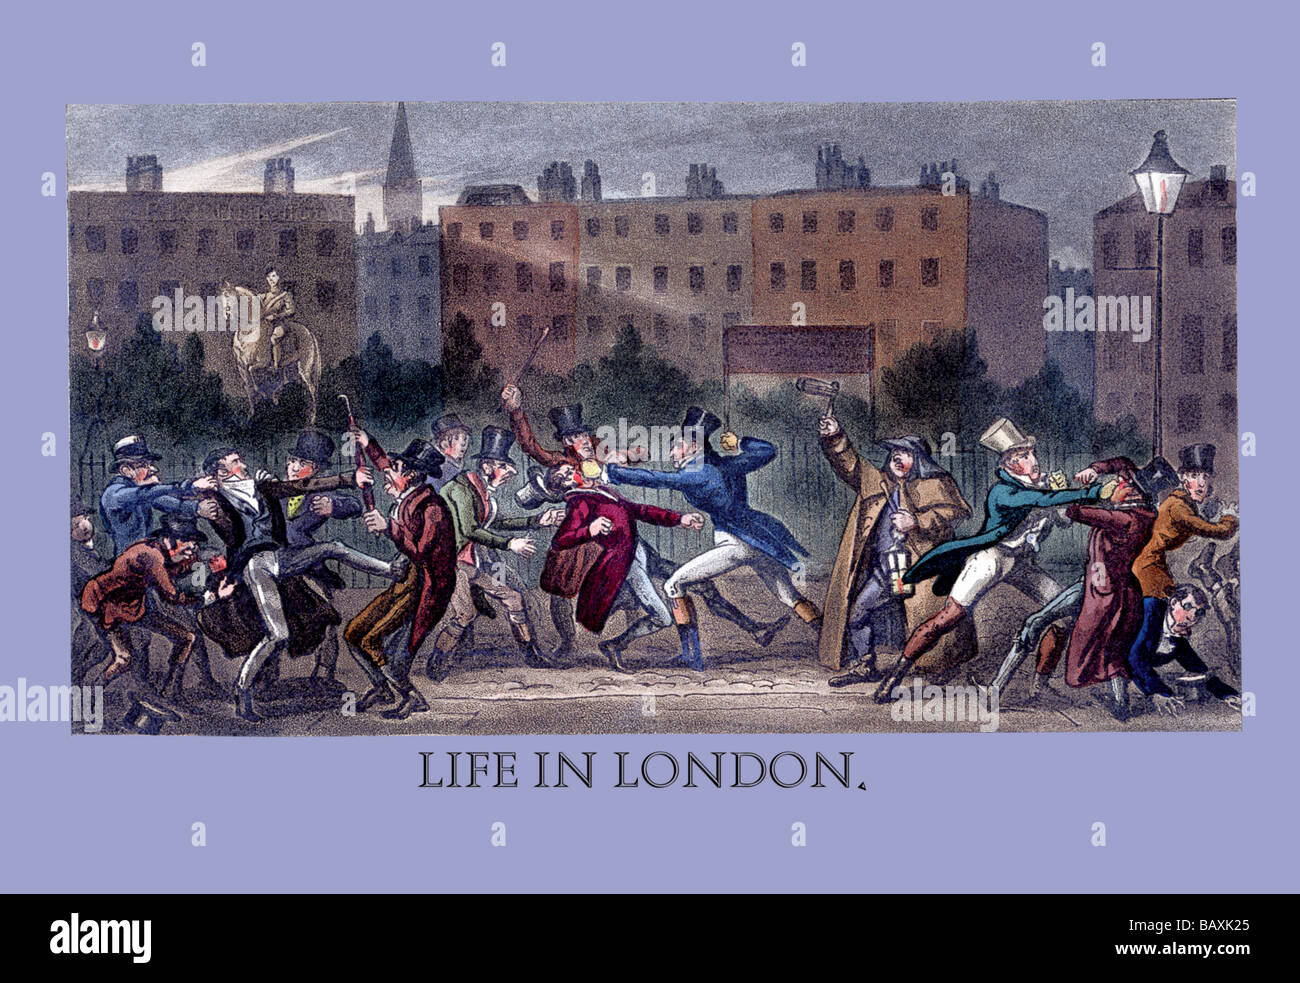 Life in London - Stock Image